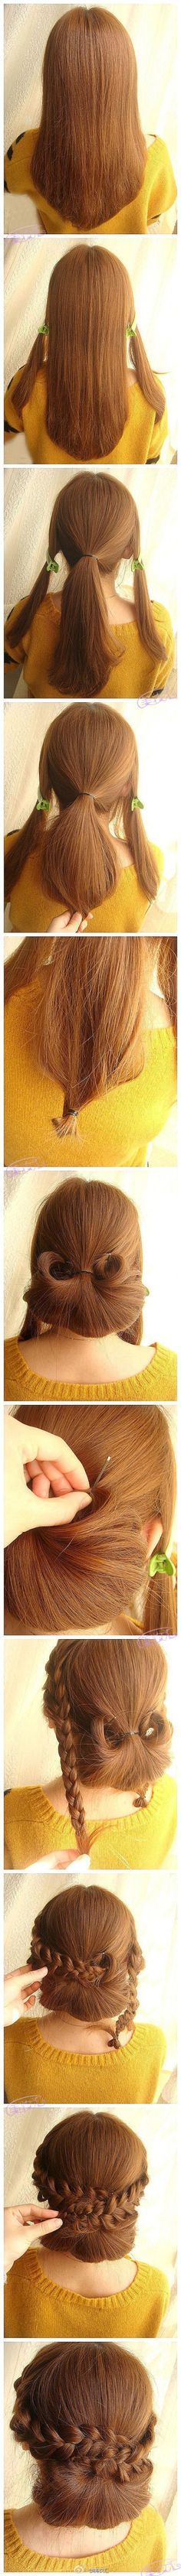 17 ways to make a vintage hairstyle